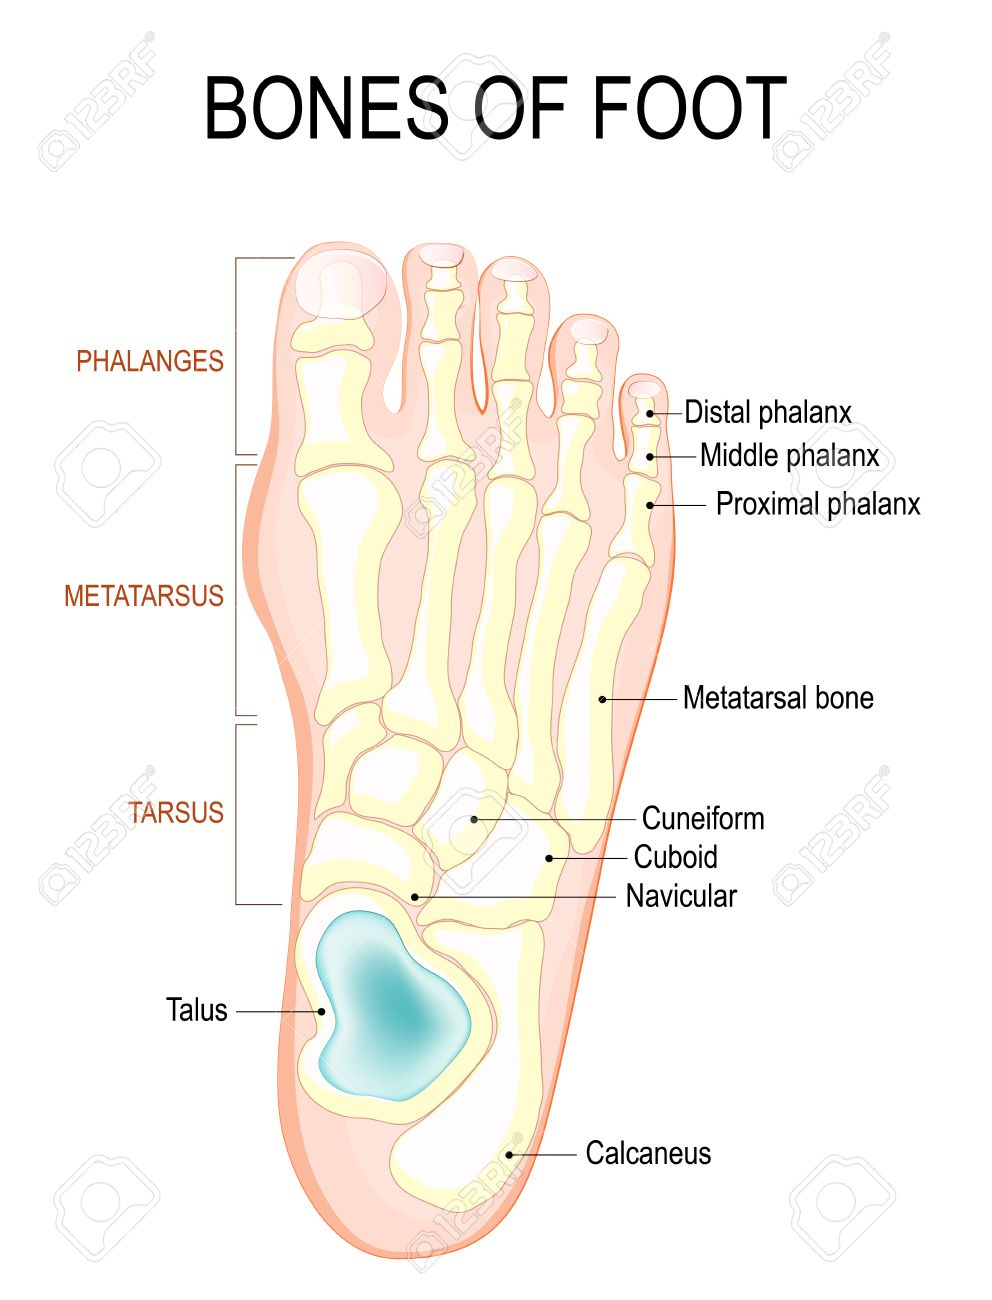 medium resolution of bones of foot human anatomy the diagram shows the placement and names of all